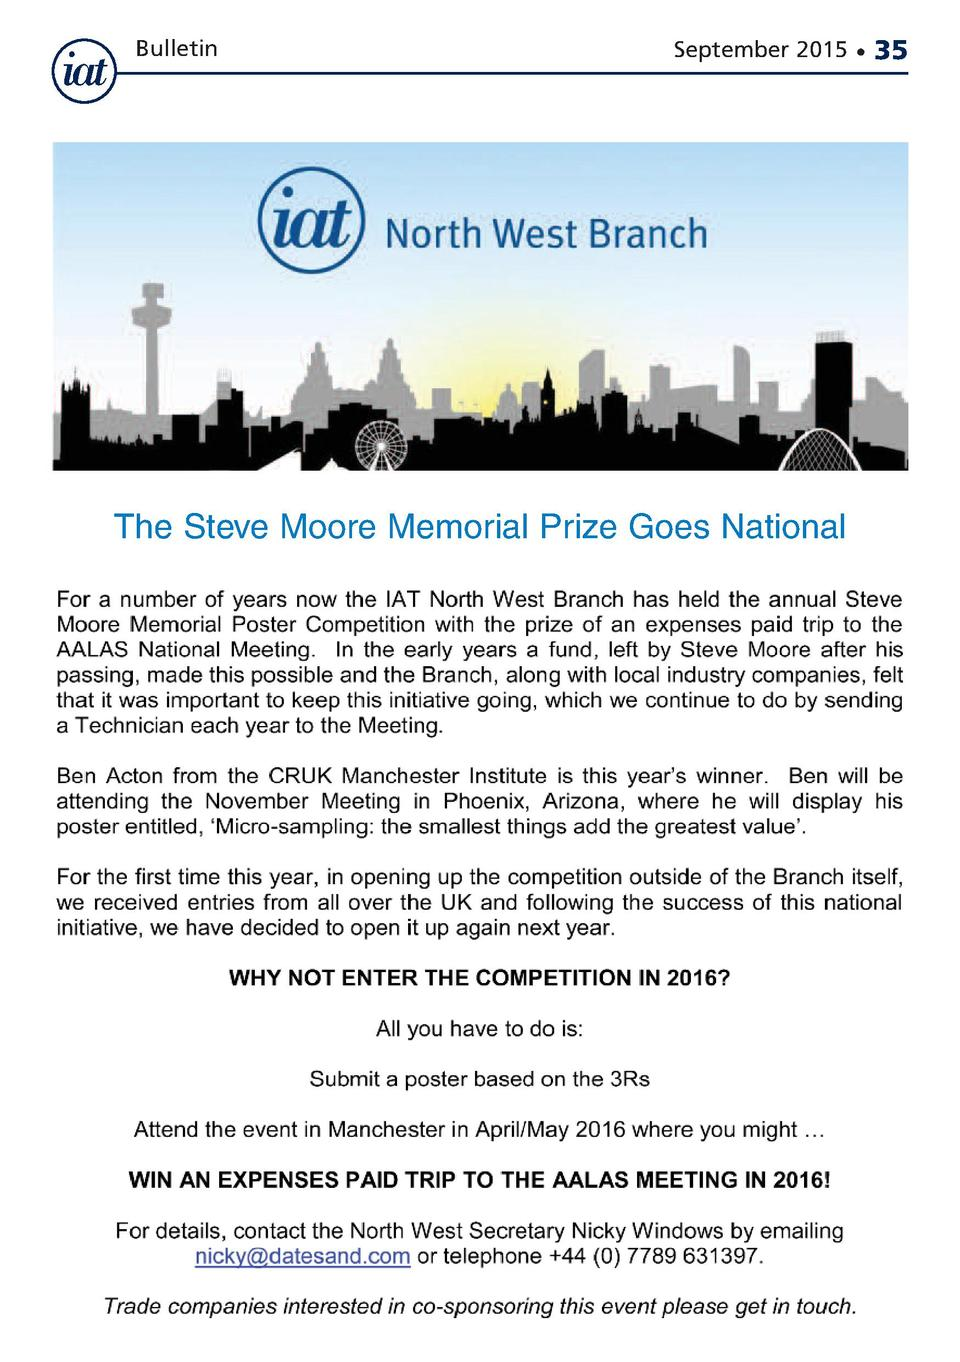 Bulletin  September 2015      The Steve Moore Memorial Prize Goes National  35